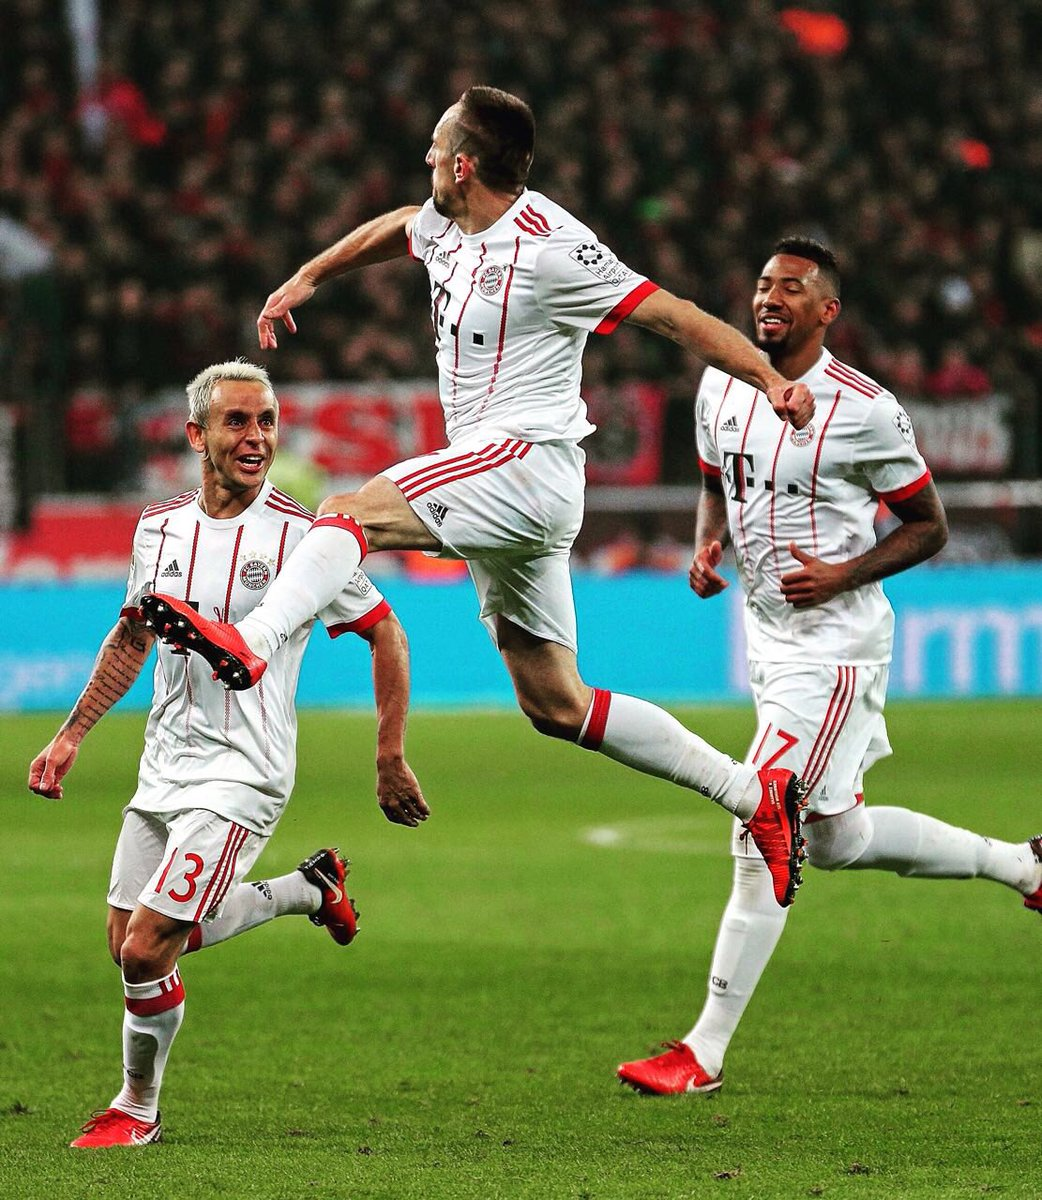 Bayern face Liverpool in the Champions league next week (Agency Photo)